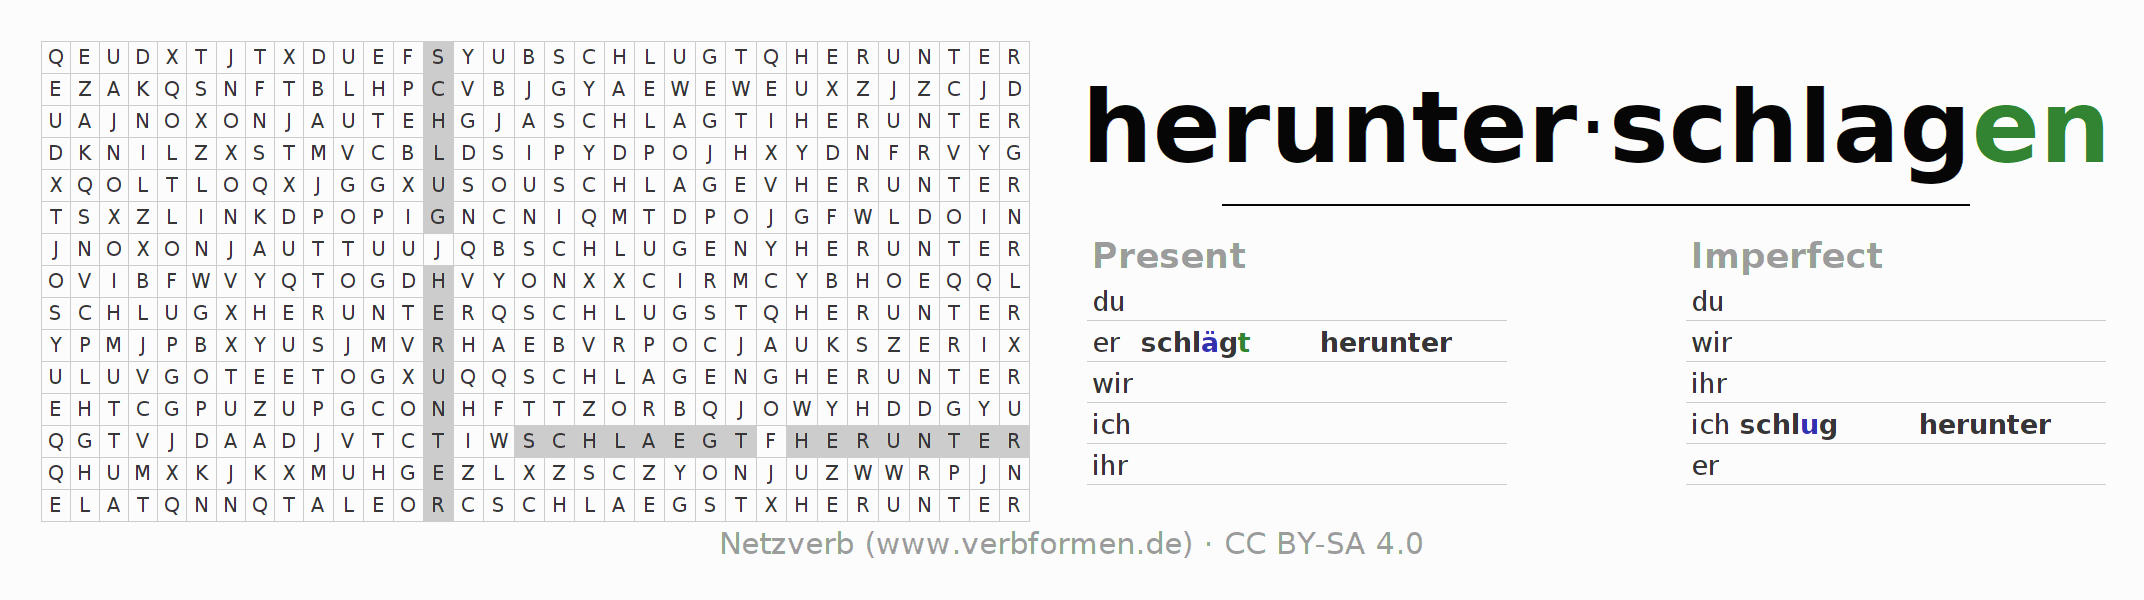 Word search puzzle for the conjugation of the verb herunterschlagen (ist)